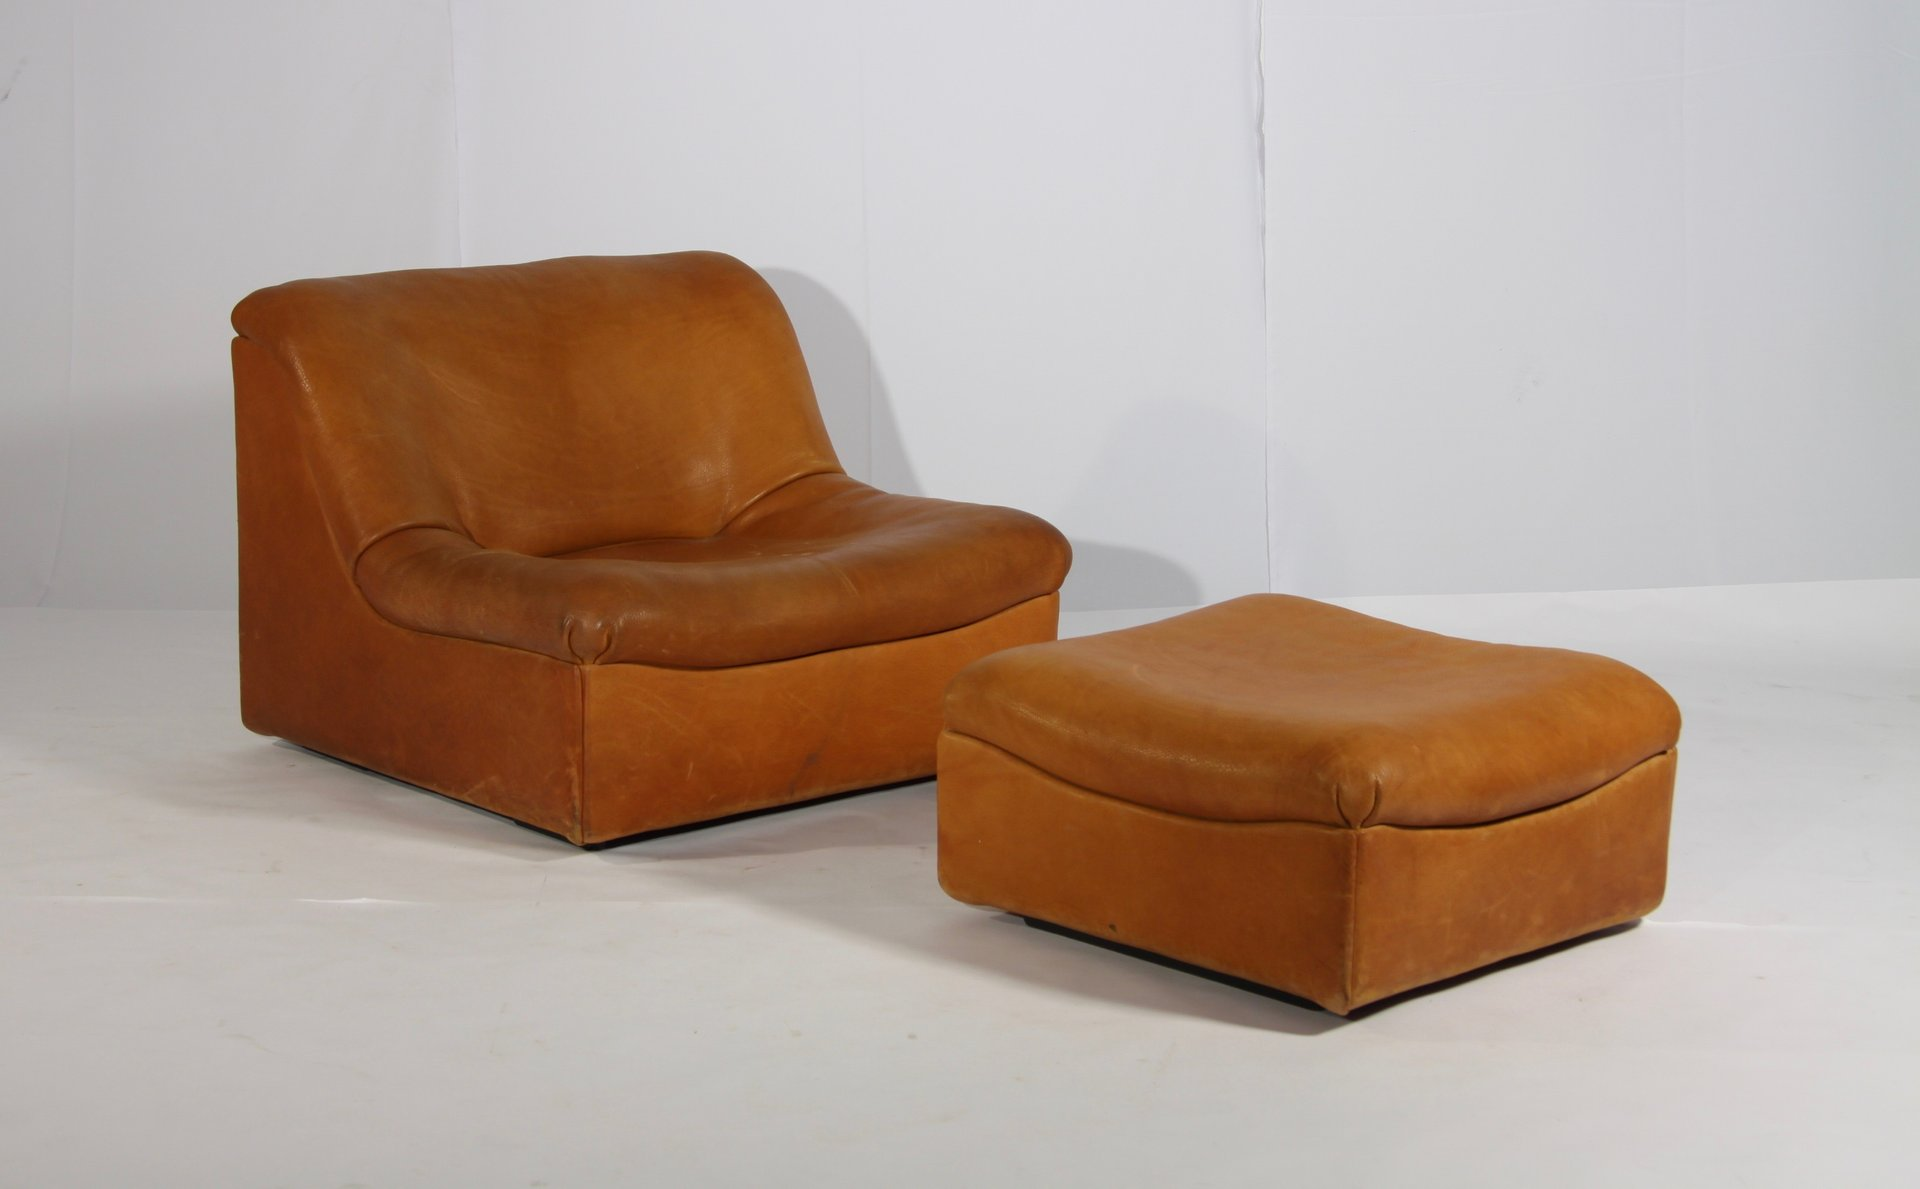 Ds 46 Thick Buffalo Leather Lounge Chair Pouf From De Sede 1970s For Sale At Pamono